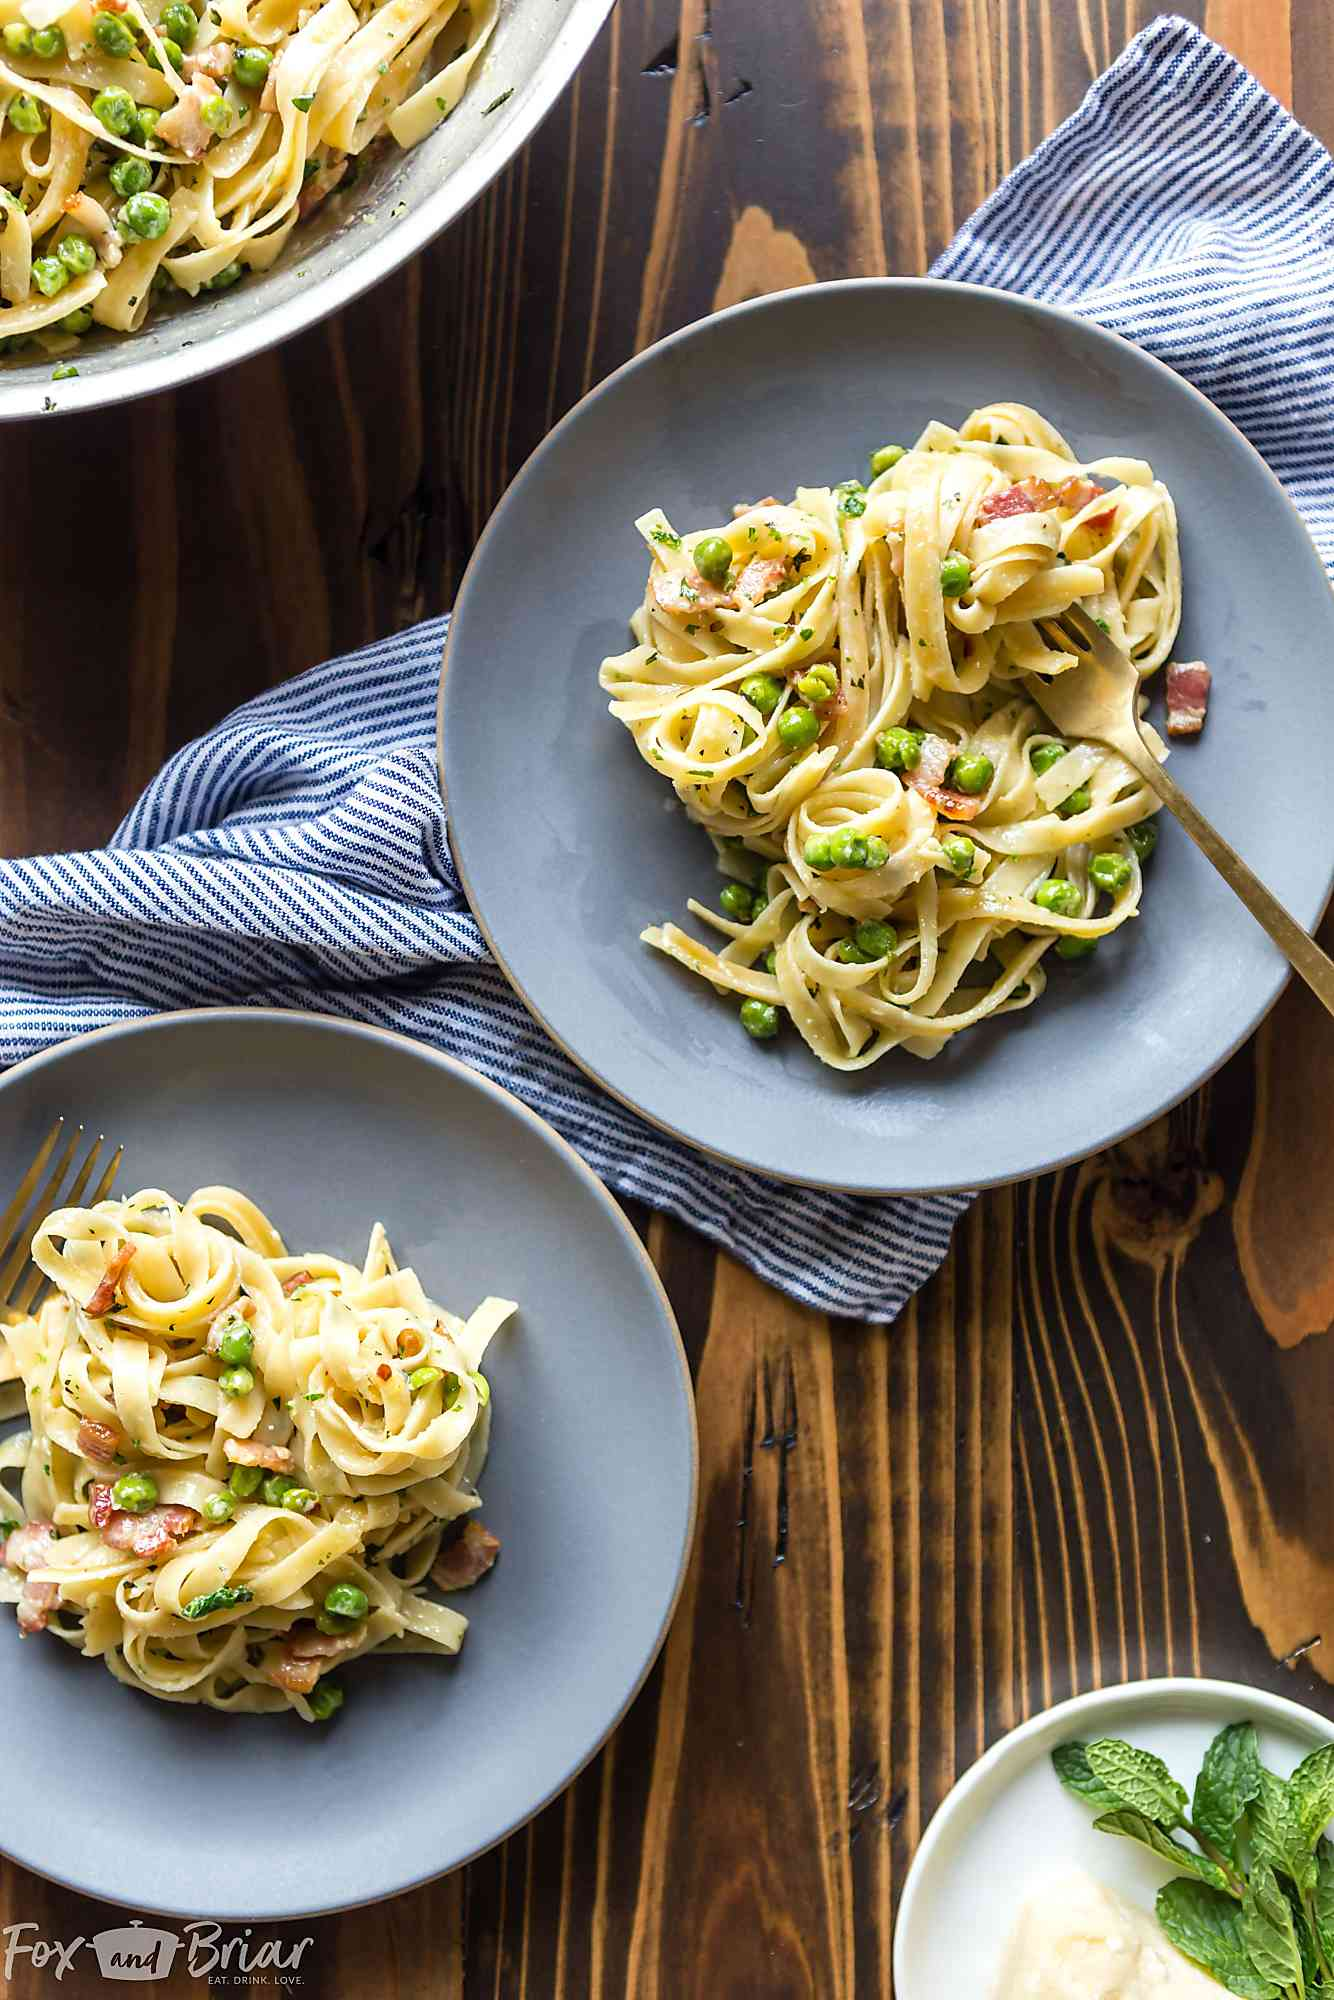 This quick Creamy Pasta with Pancetta and Peas only takes 15 minutes and is an easy and elegant dinner for any night of the week! @QFCgrocery #QFCdelivery #sponsored Pasta with peas and bacon | Pasta with peas and pancetta recipe | noodles with peas and bacon | cramy pasta recipe | Easy pasta recipe | easy dinner recipe | 15 minute dinner | quick pasta recipe | date night recipe | peas and bacon cream sauce